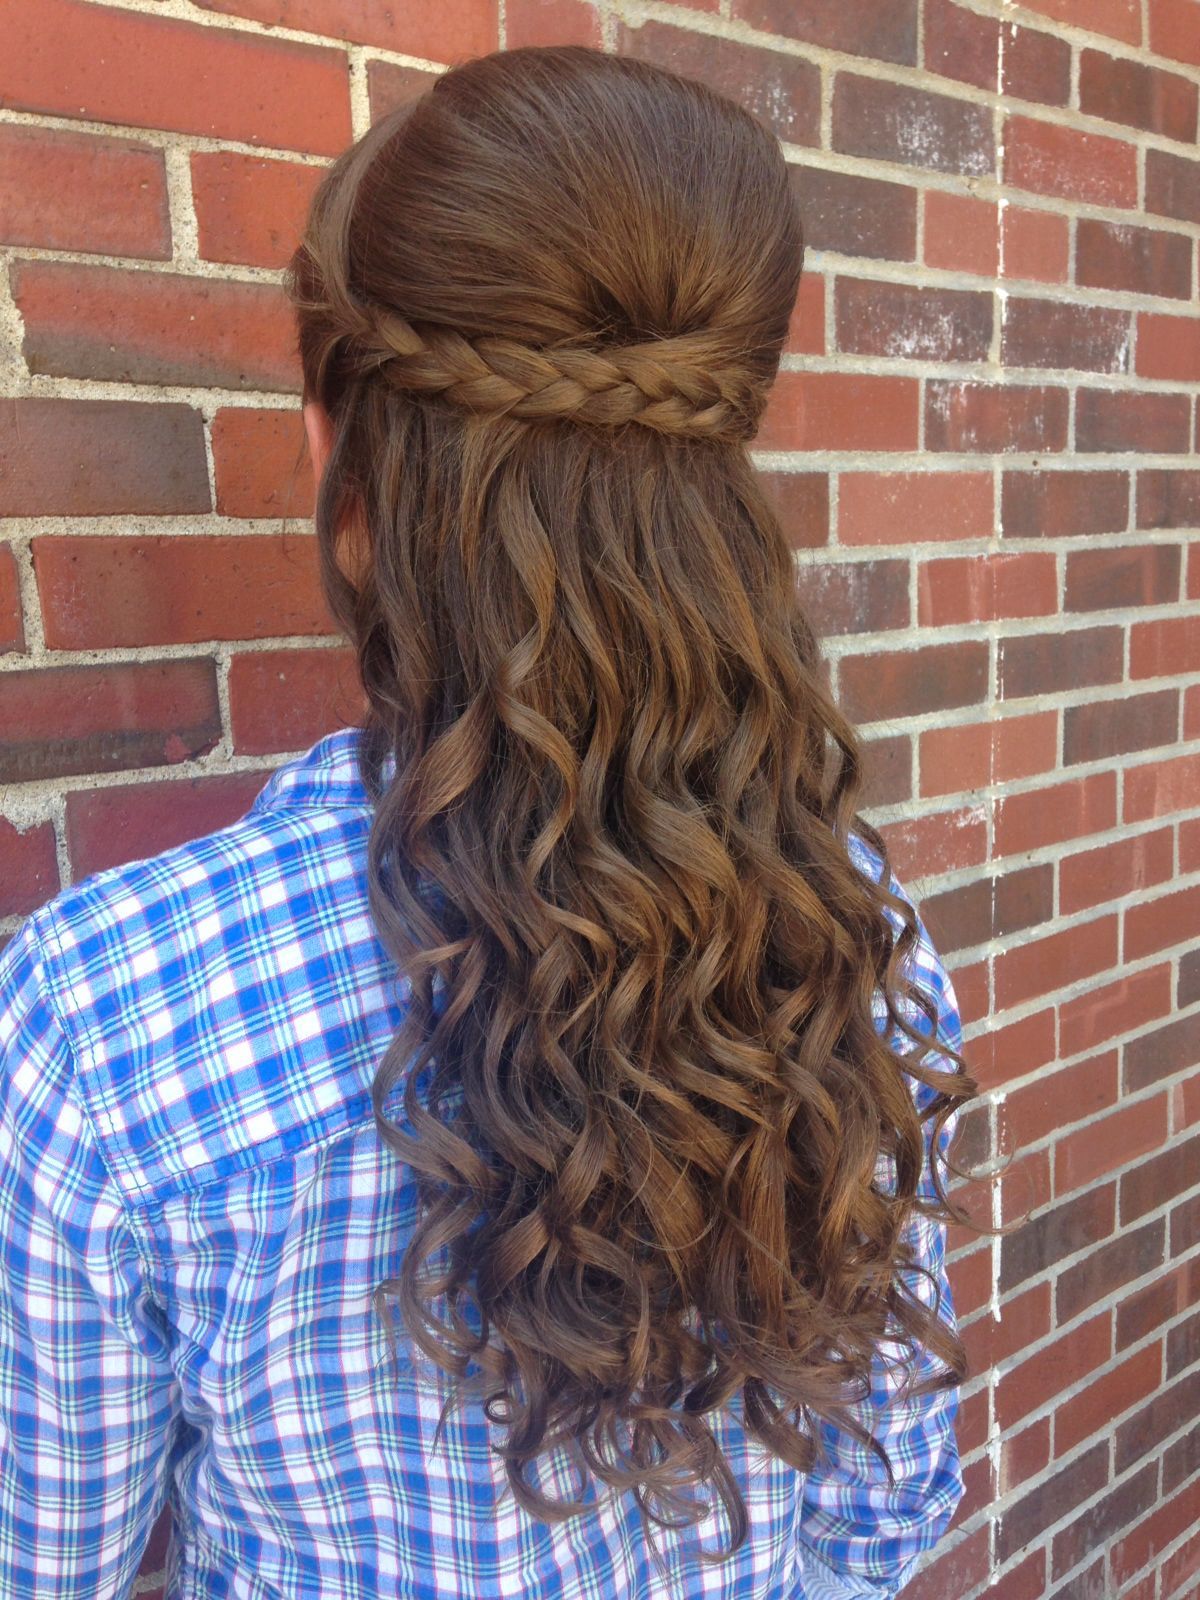 Hairstyles : Prom Hair Half Up Down Curly Braided Bump Romantic Updo Pertaining To Most Recent Romantic Prom Updos With Braids (View 12 of 20)